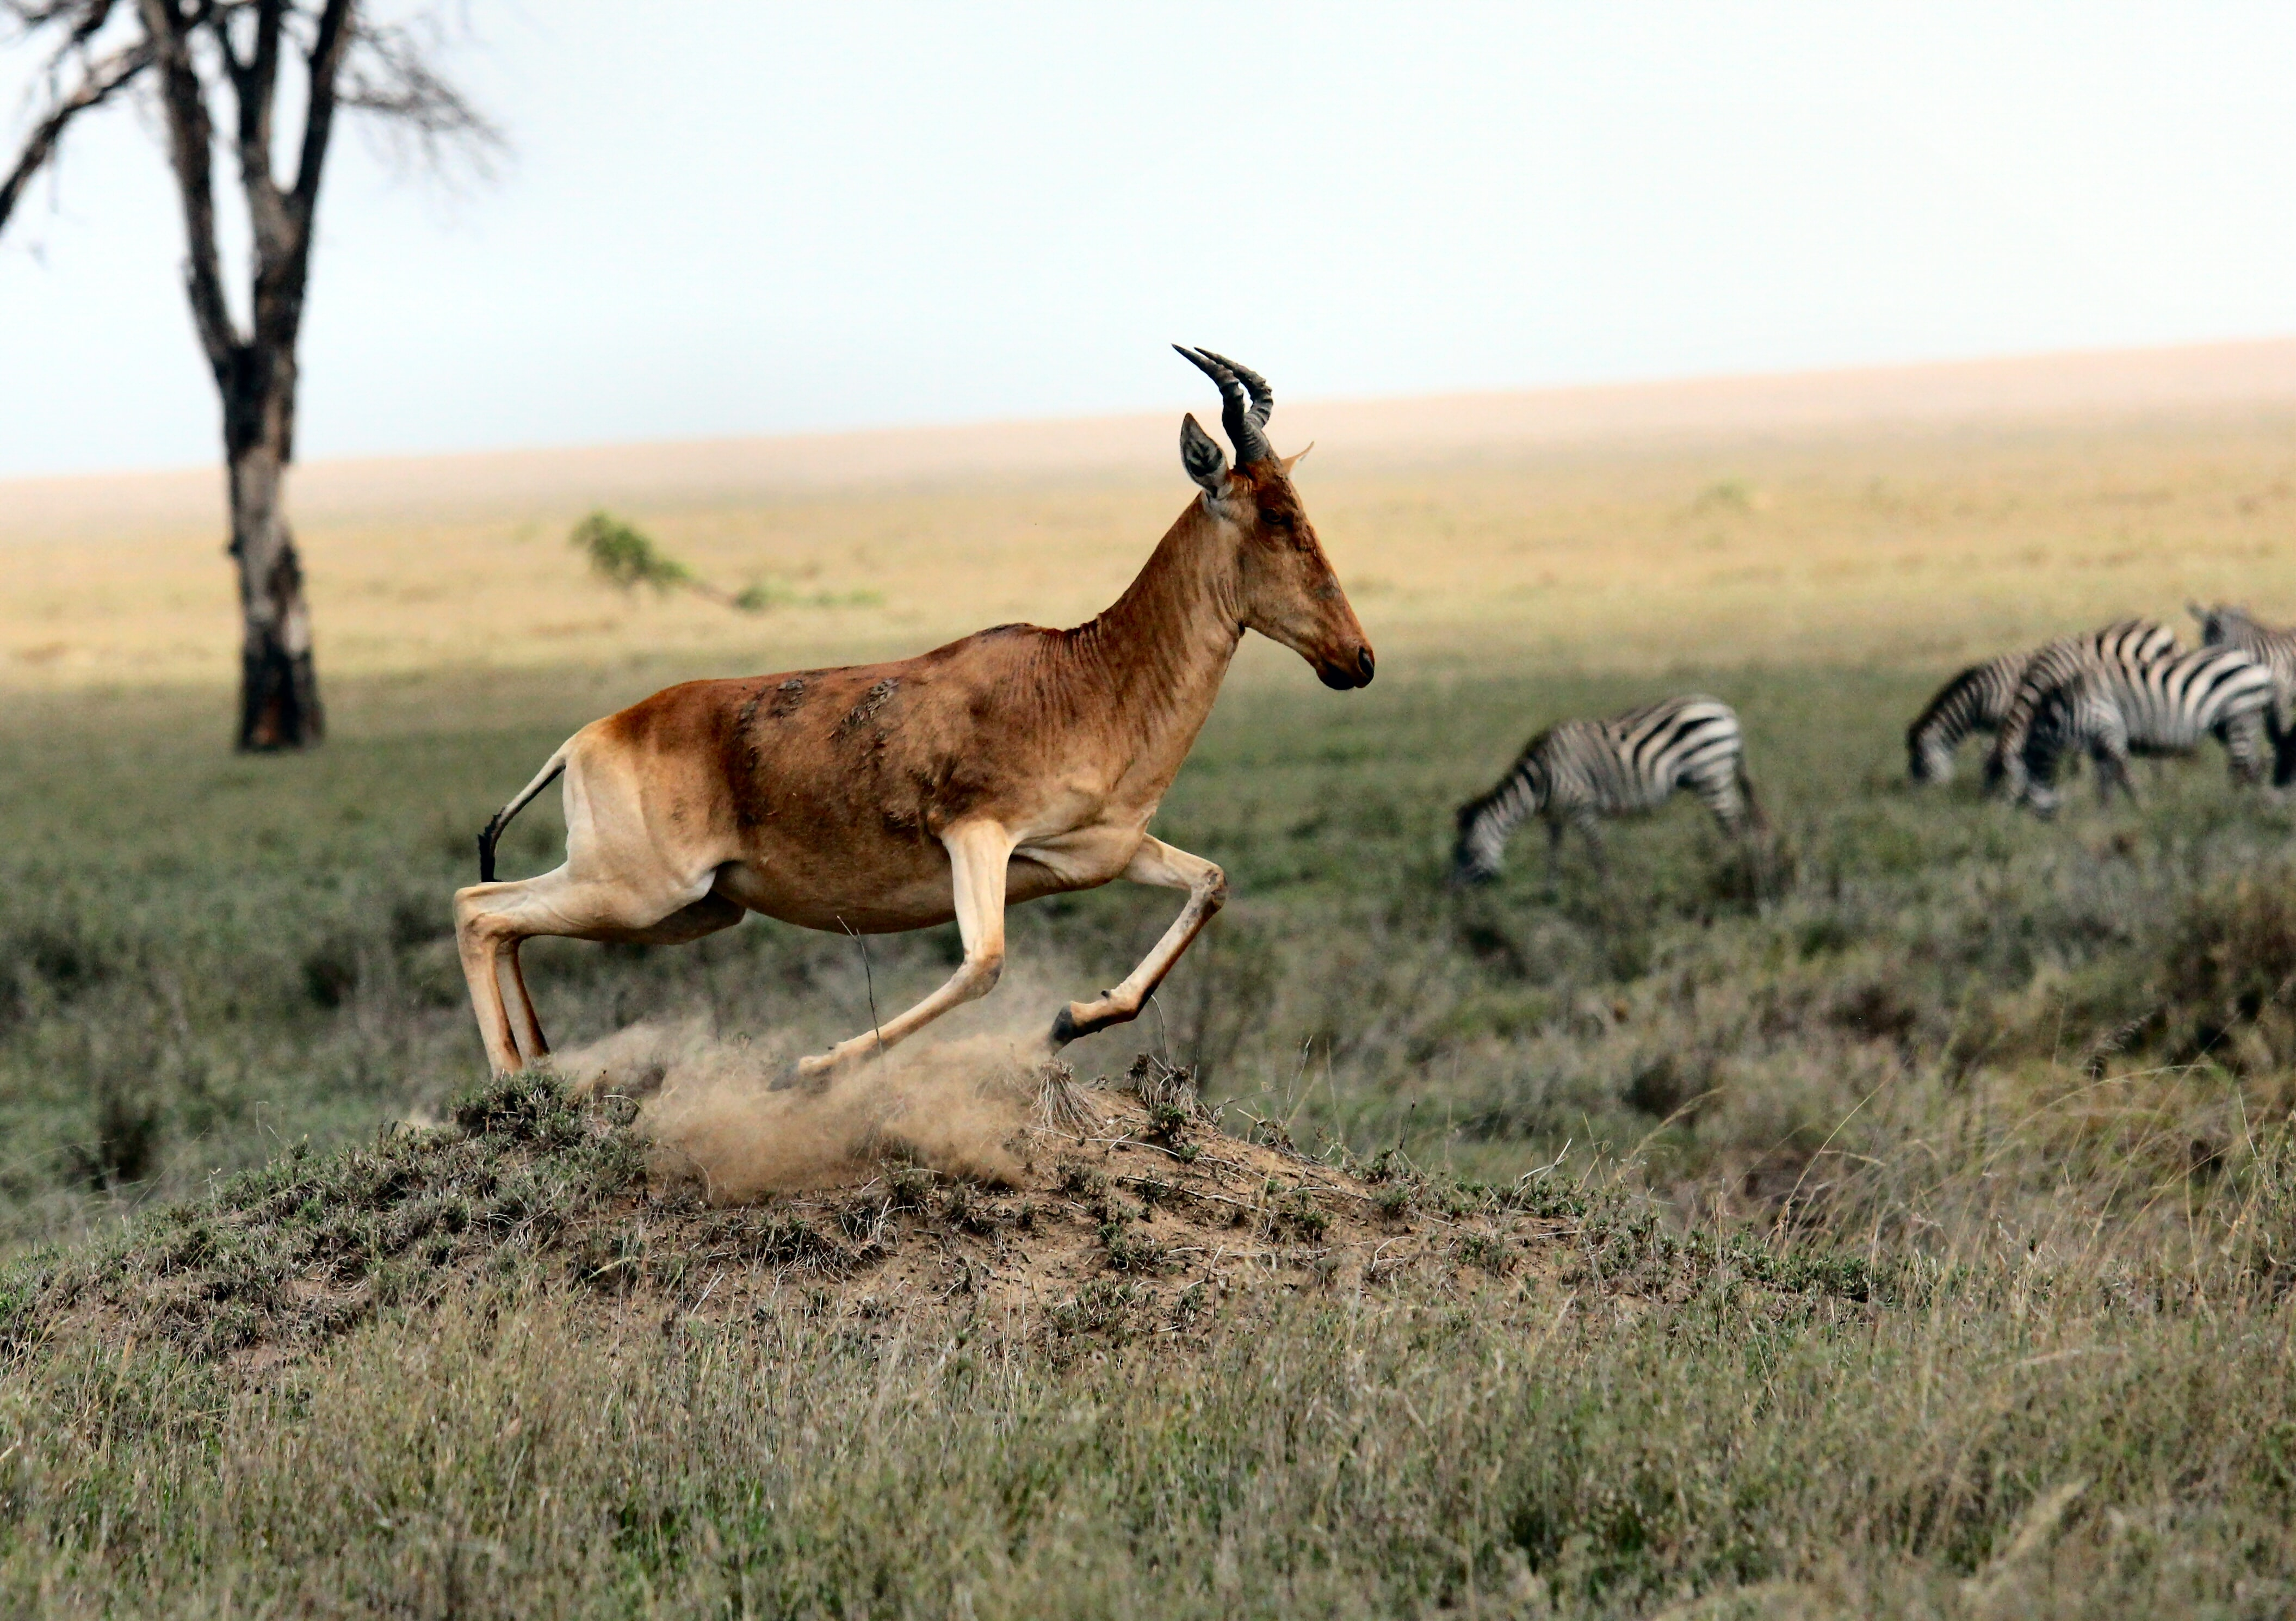 A running antelope near a grazing herd of zebras in a savannah